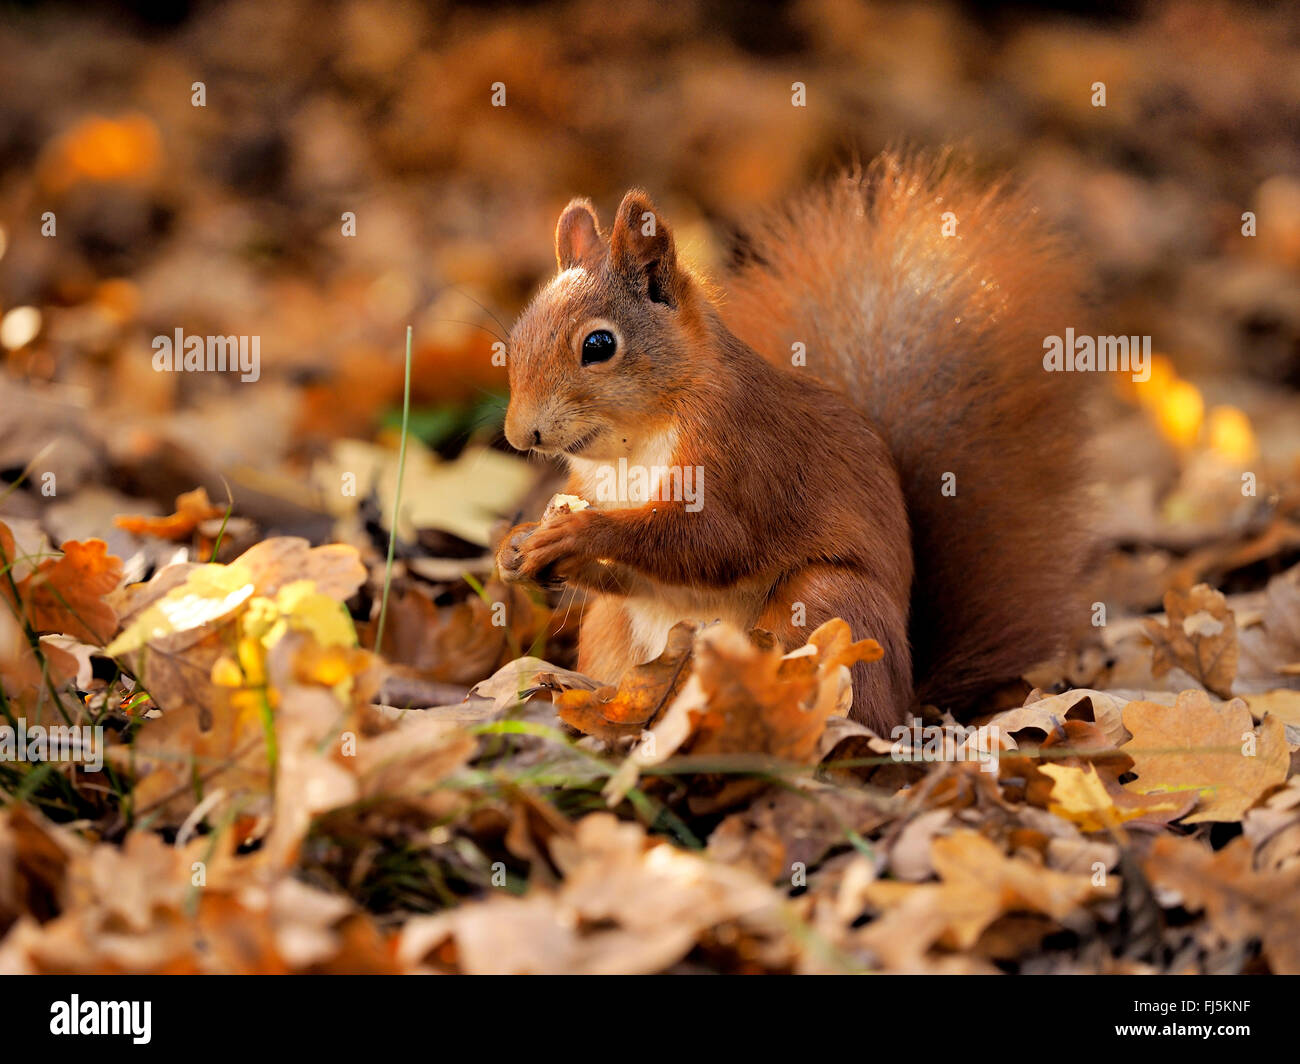 European red squirrel, Eurasian red squirrel (Sciurus vulgaris), sitting on autumn foliage and eating, Germany, - Stock Image